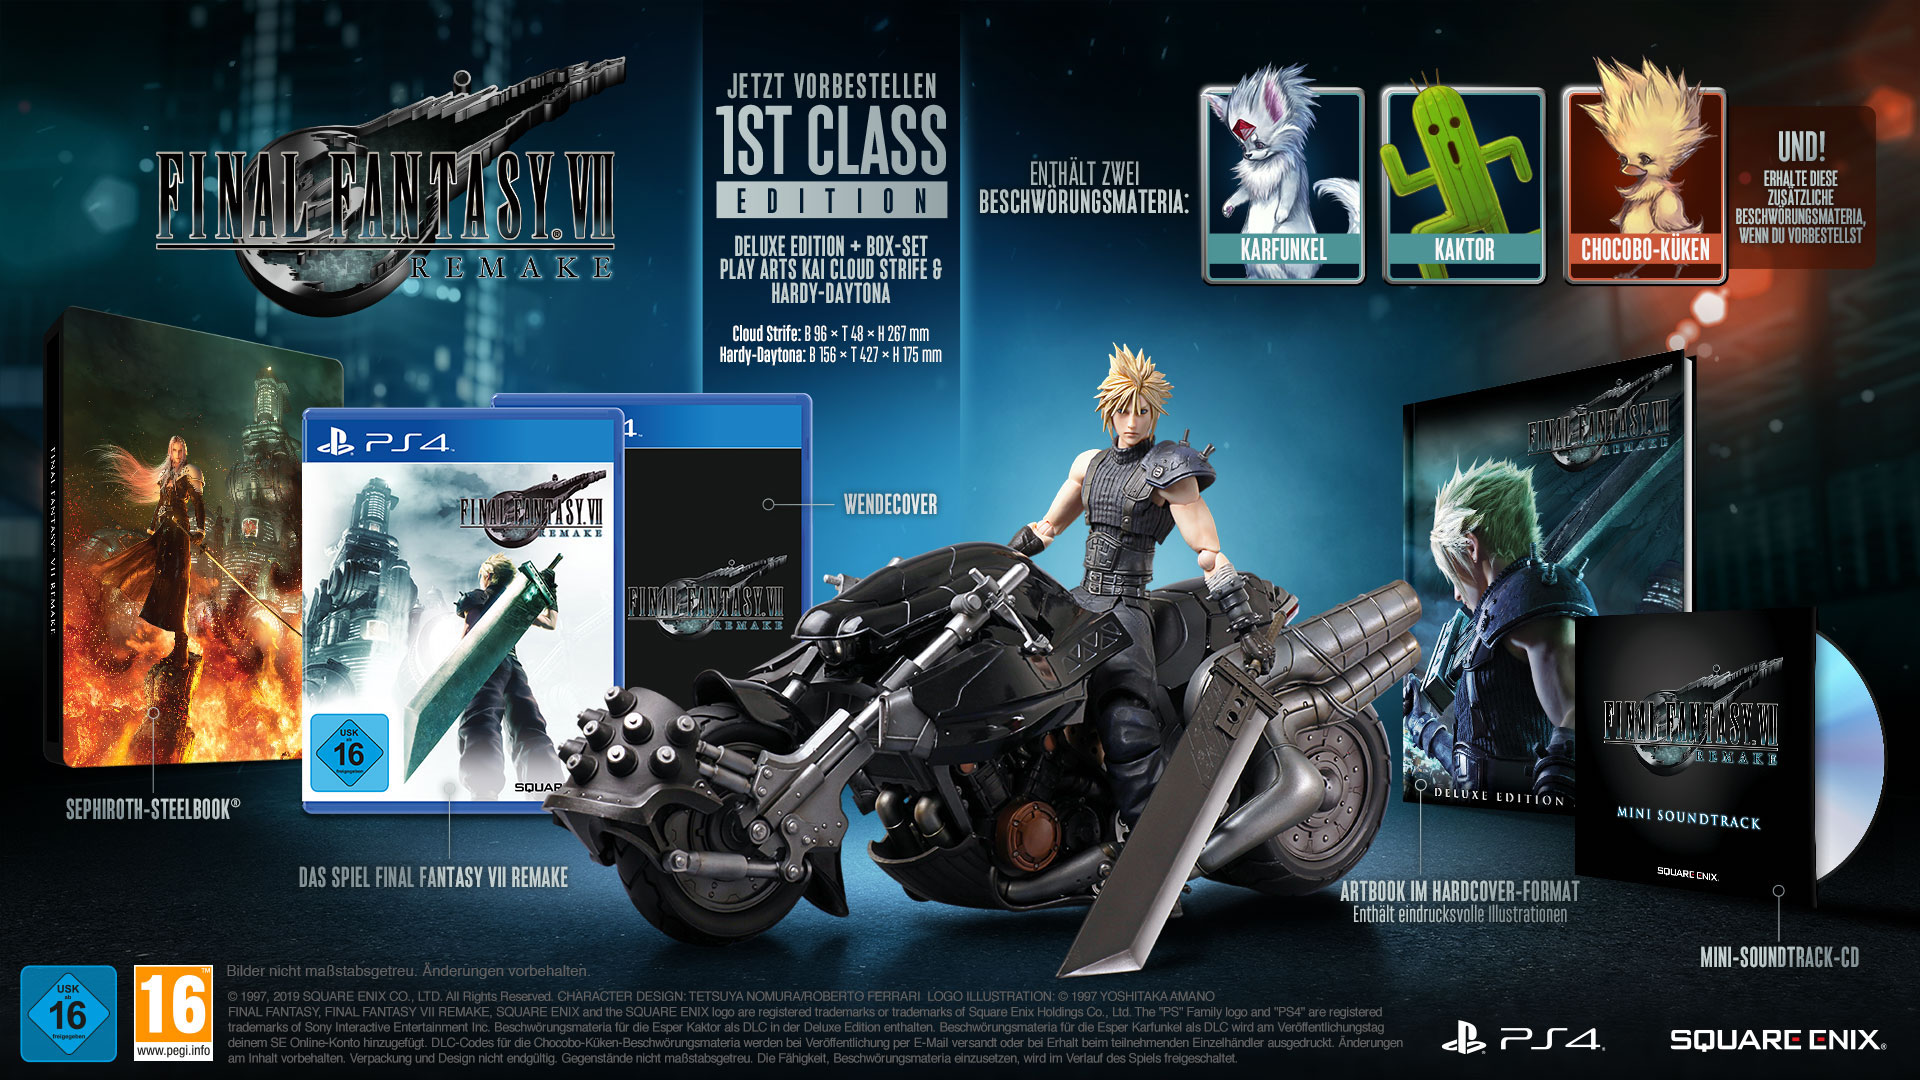 Versione Deluxe Edition del remake di Final Fantasy VII